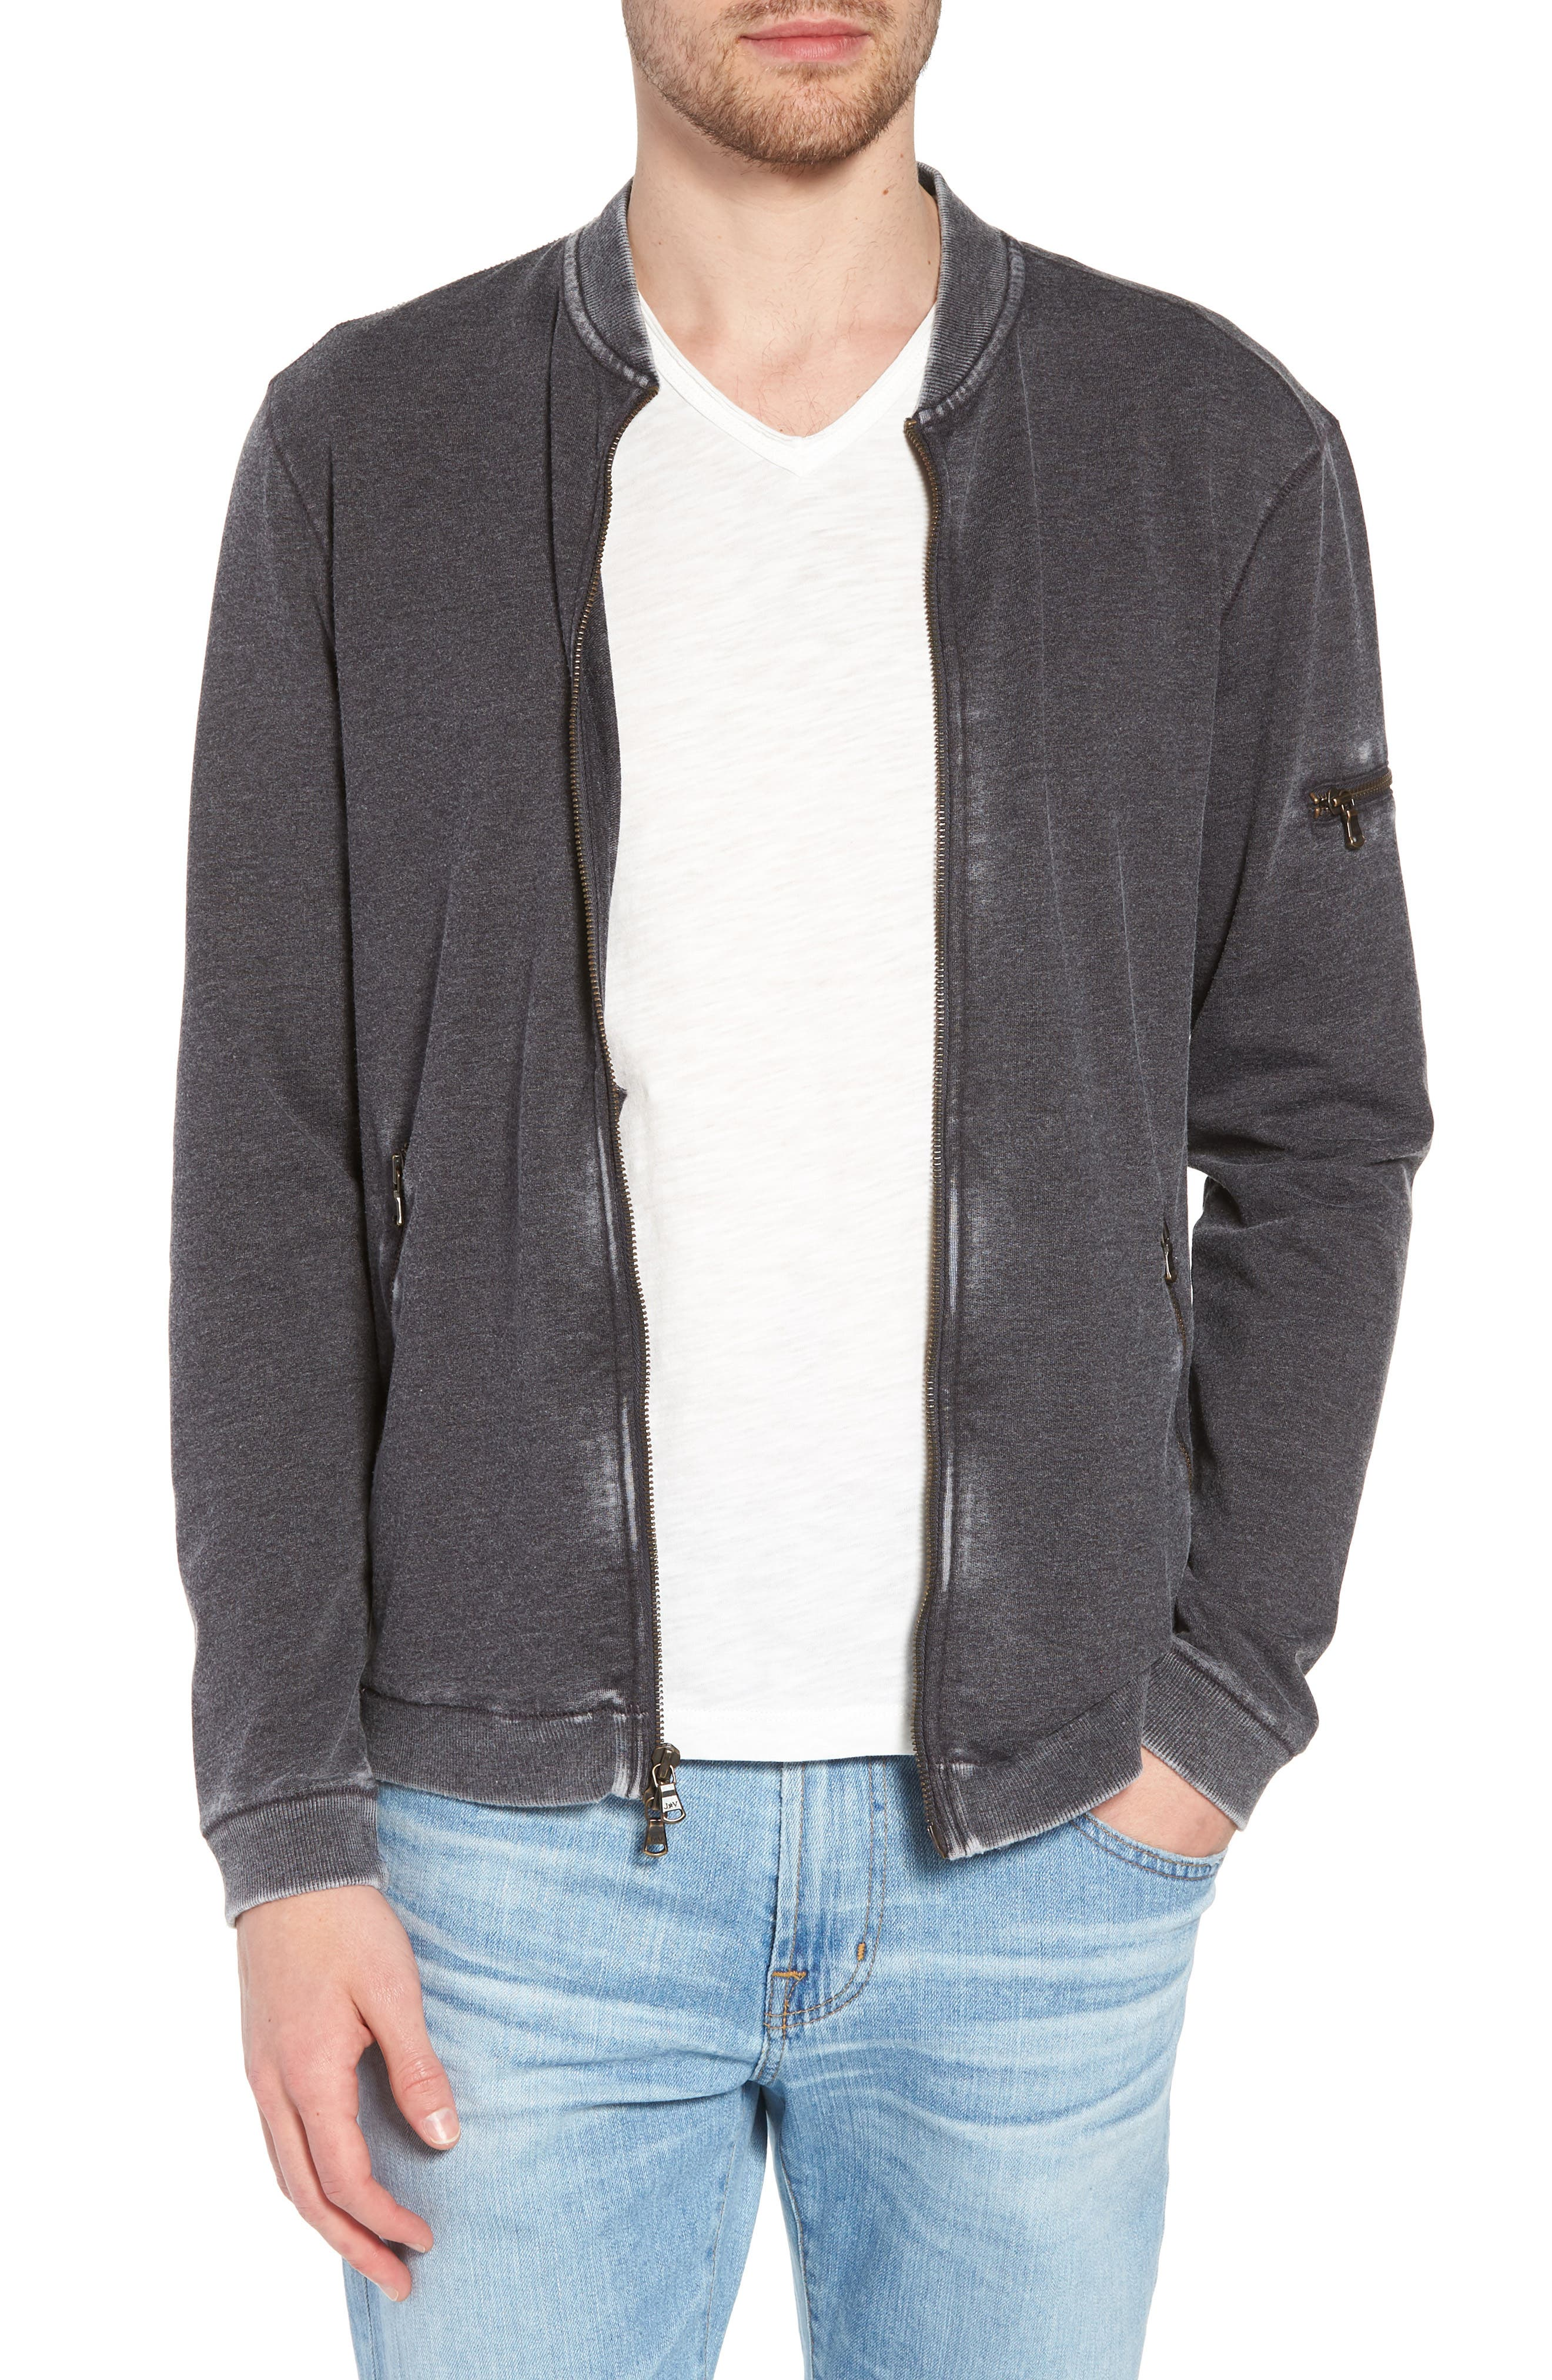 Burnout French Terry Zip Sweater,                         Main,                         color, 032